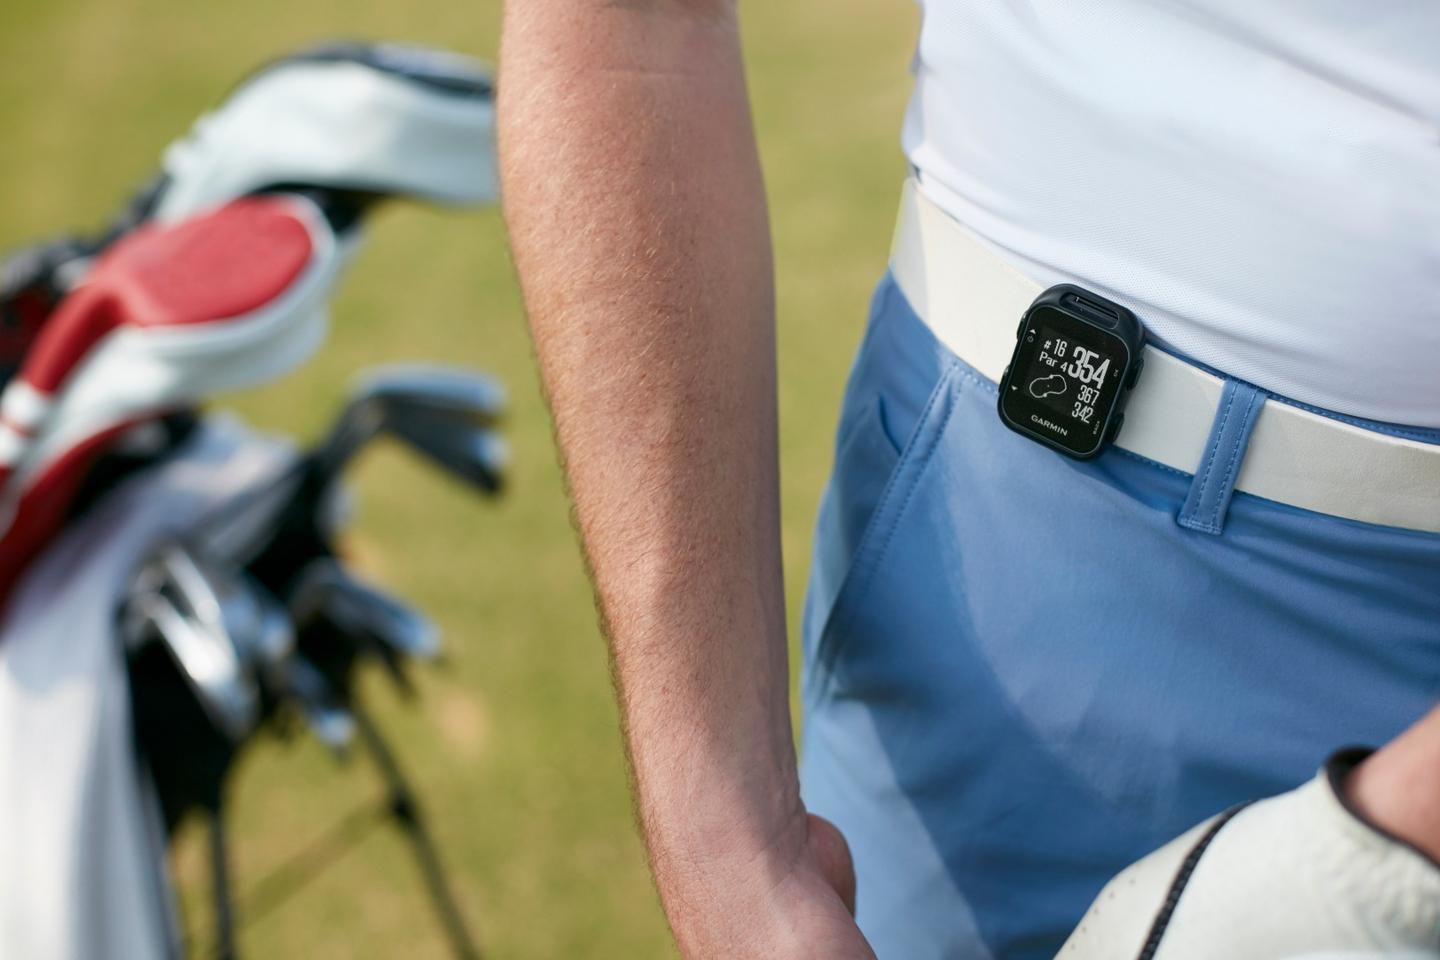 The Approach G10 is the smallest GPS device for golfers the company has produced